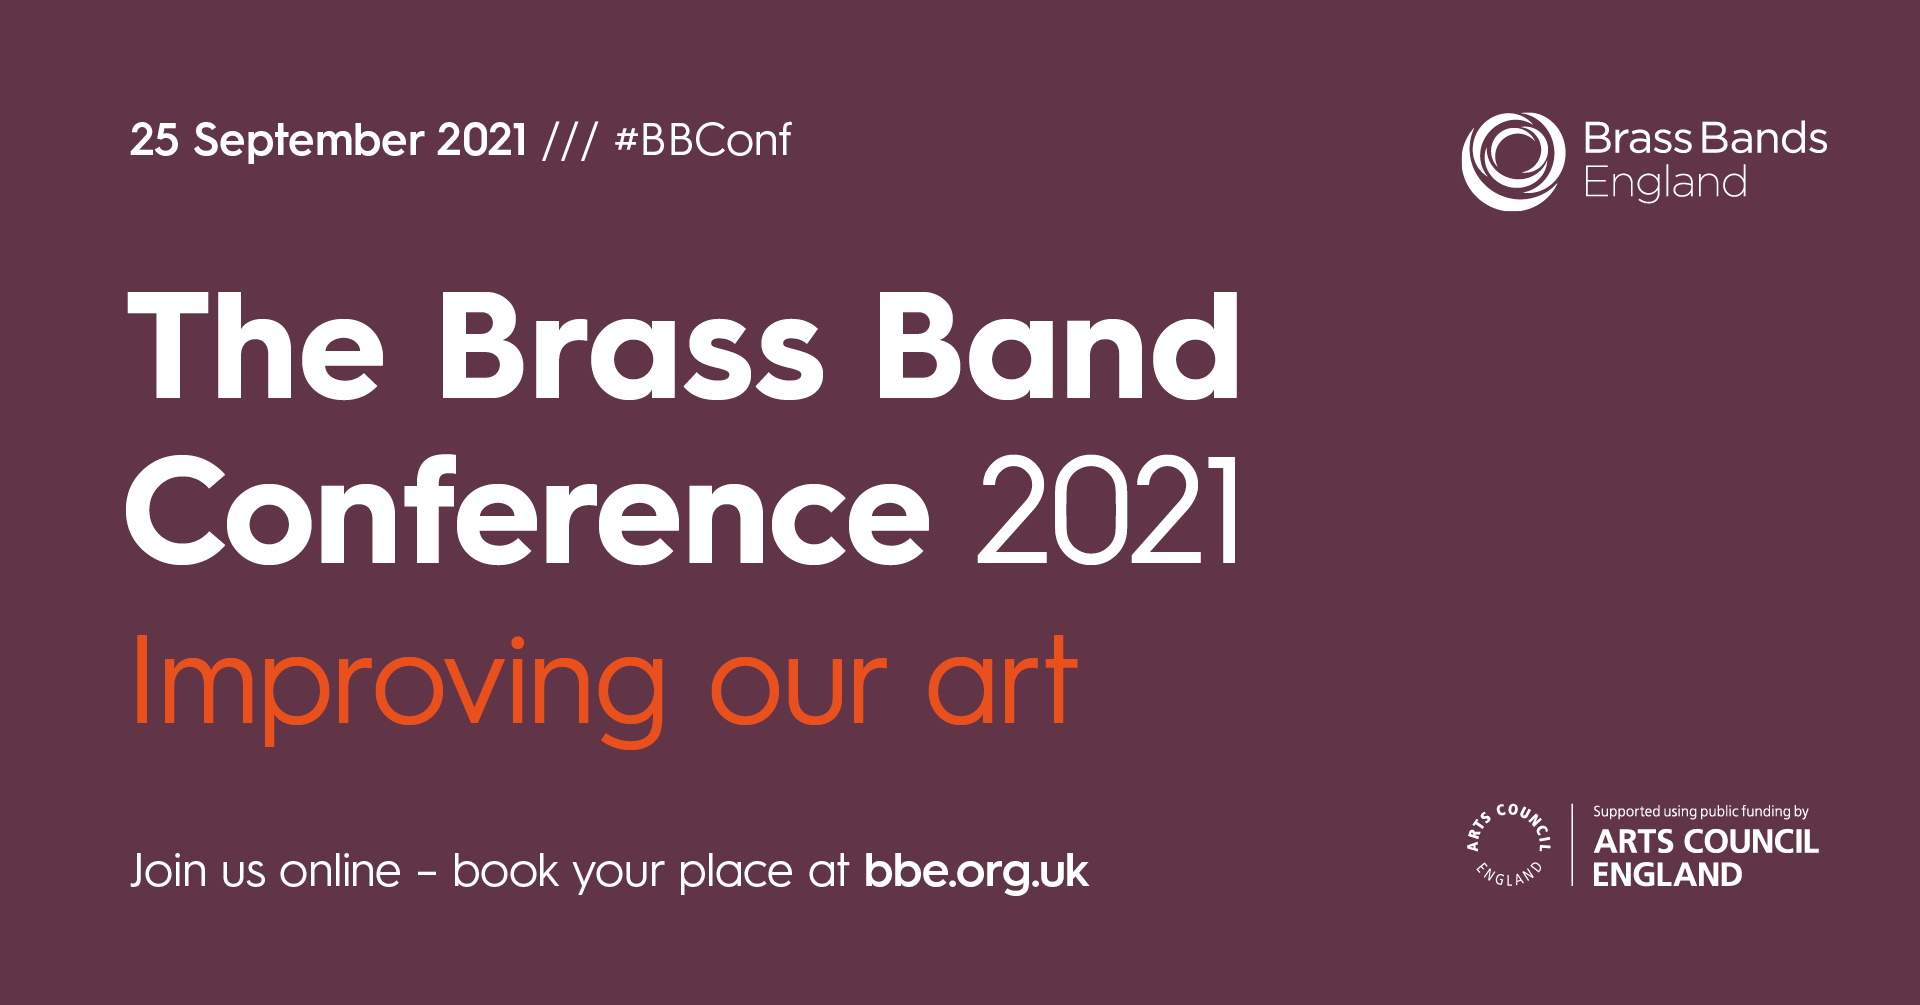 """The Brass Band Conference """"improving our art"""" 25 September 2021 #BBConf"""